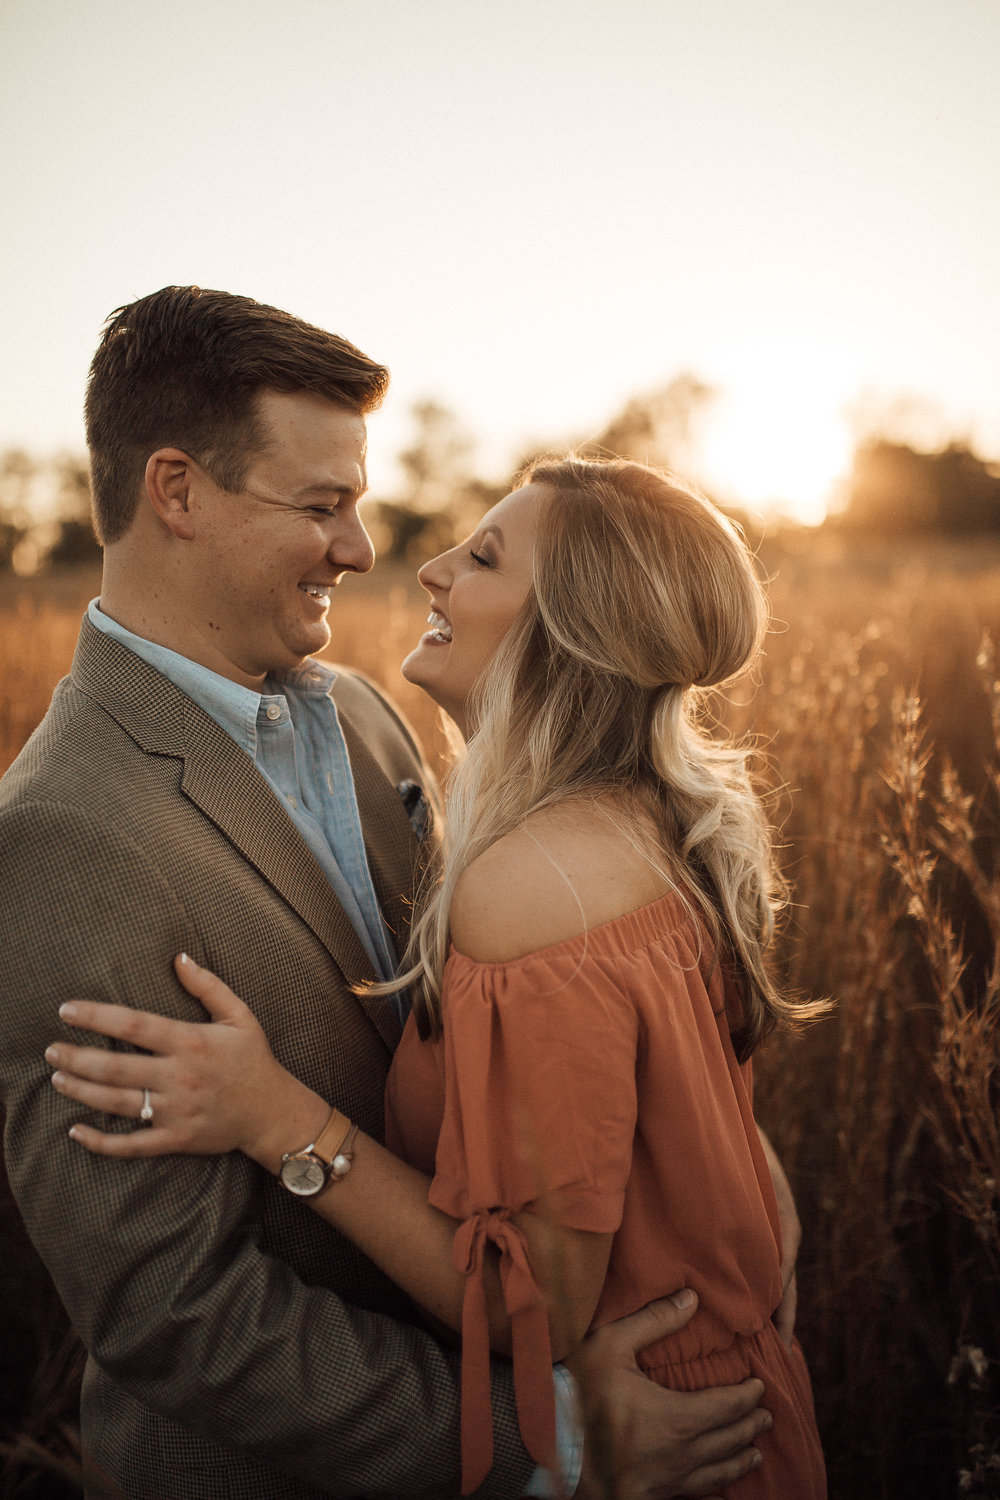 memphis-engagement-photographer-memphis-wedding-photographer-cassie-cook-photography